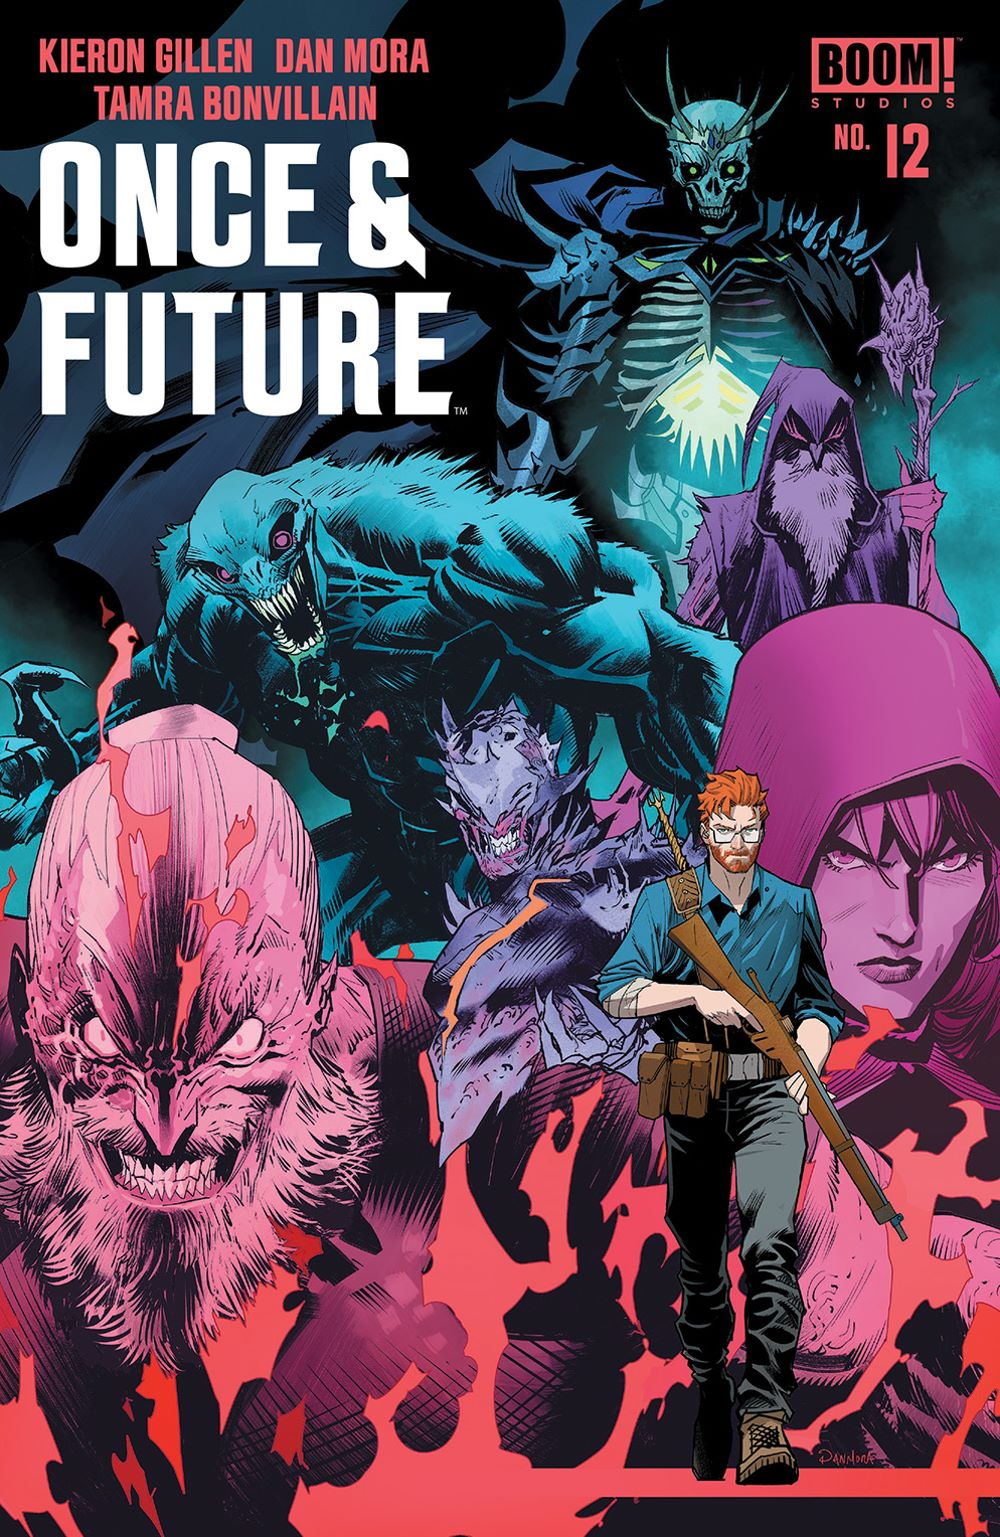 OnceFuture_012_Cover_A_Main-1 ComicList Previews: ONCE AND FUTURE #12